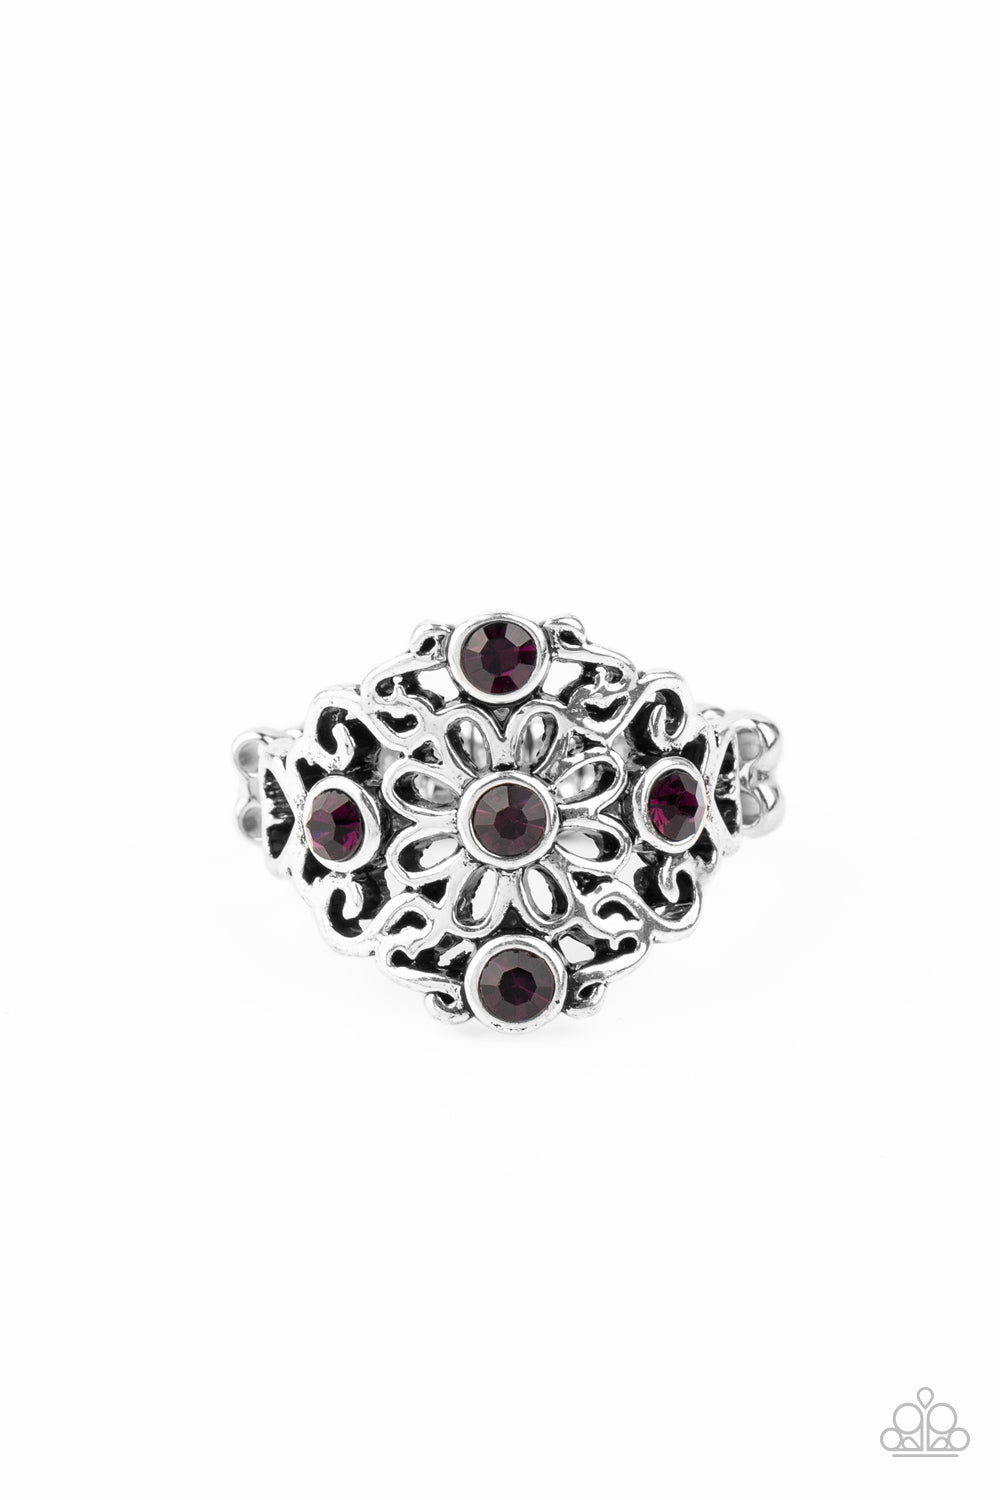 five-dollar-jewelry-one-daisy-at-a-time-purple-ring-paparazzi-accessories